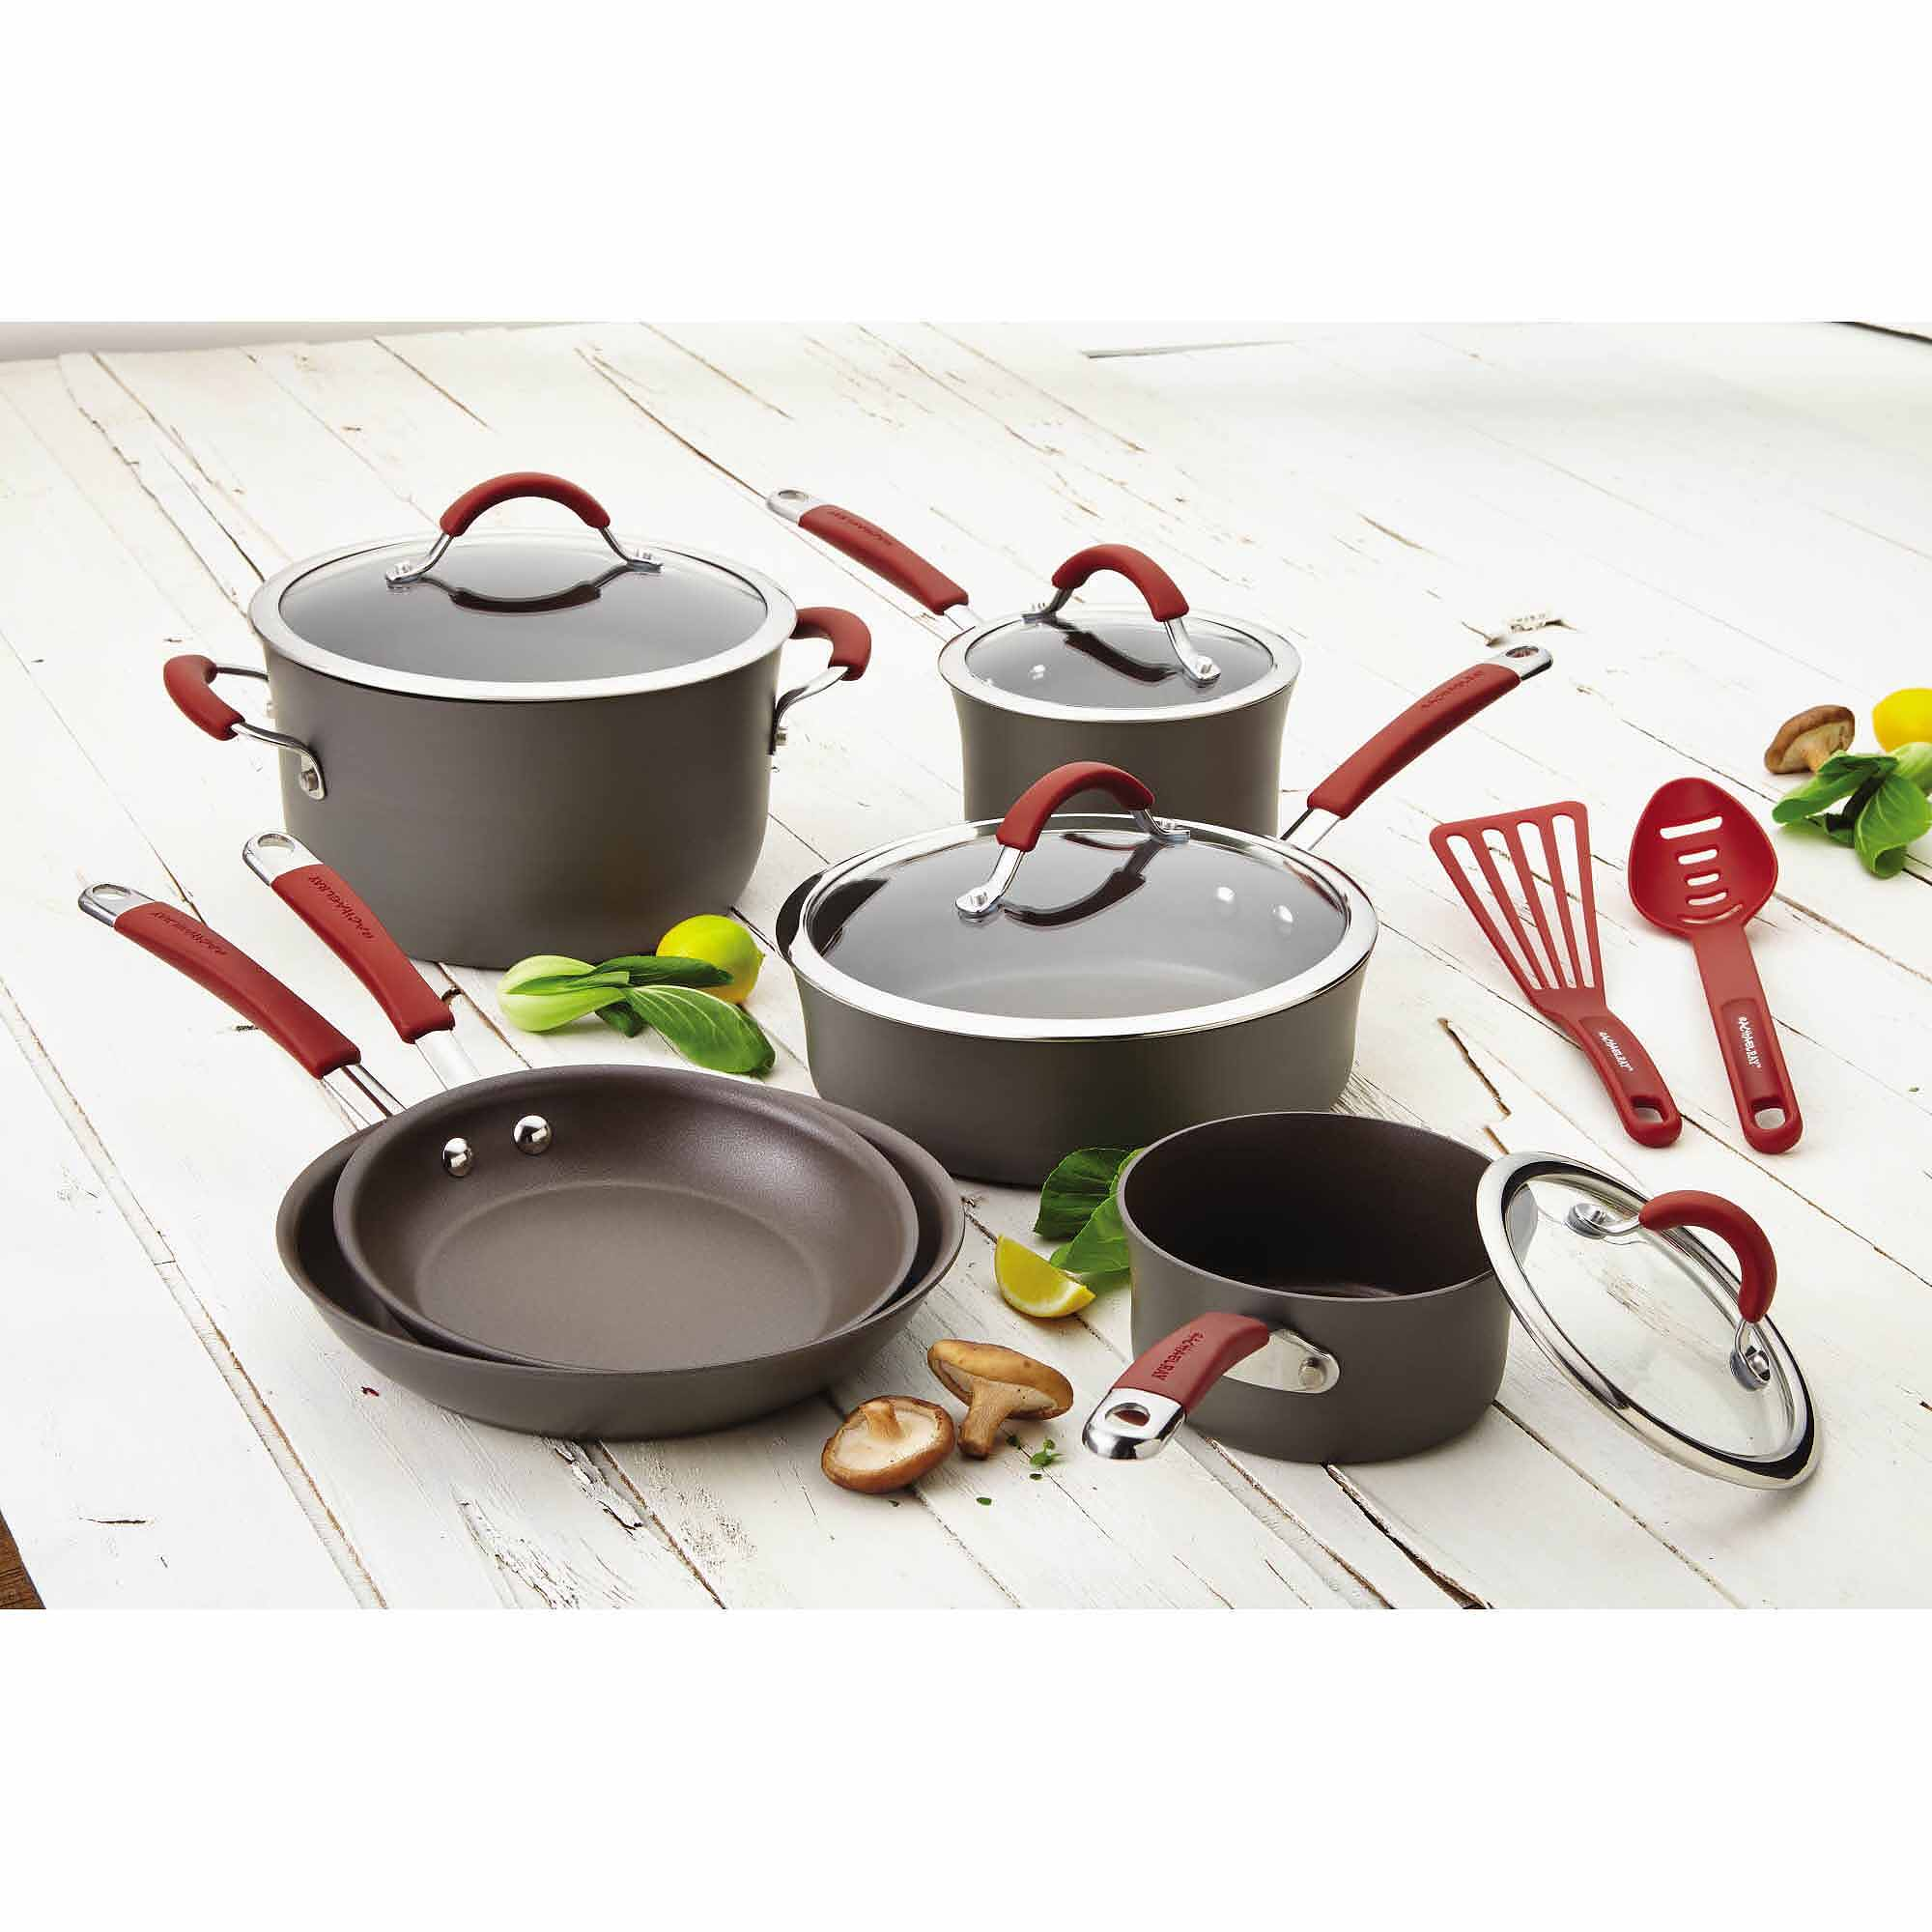 how to clean anodized cookware